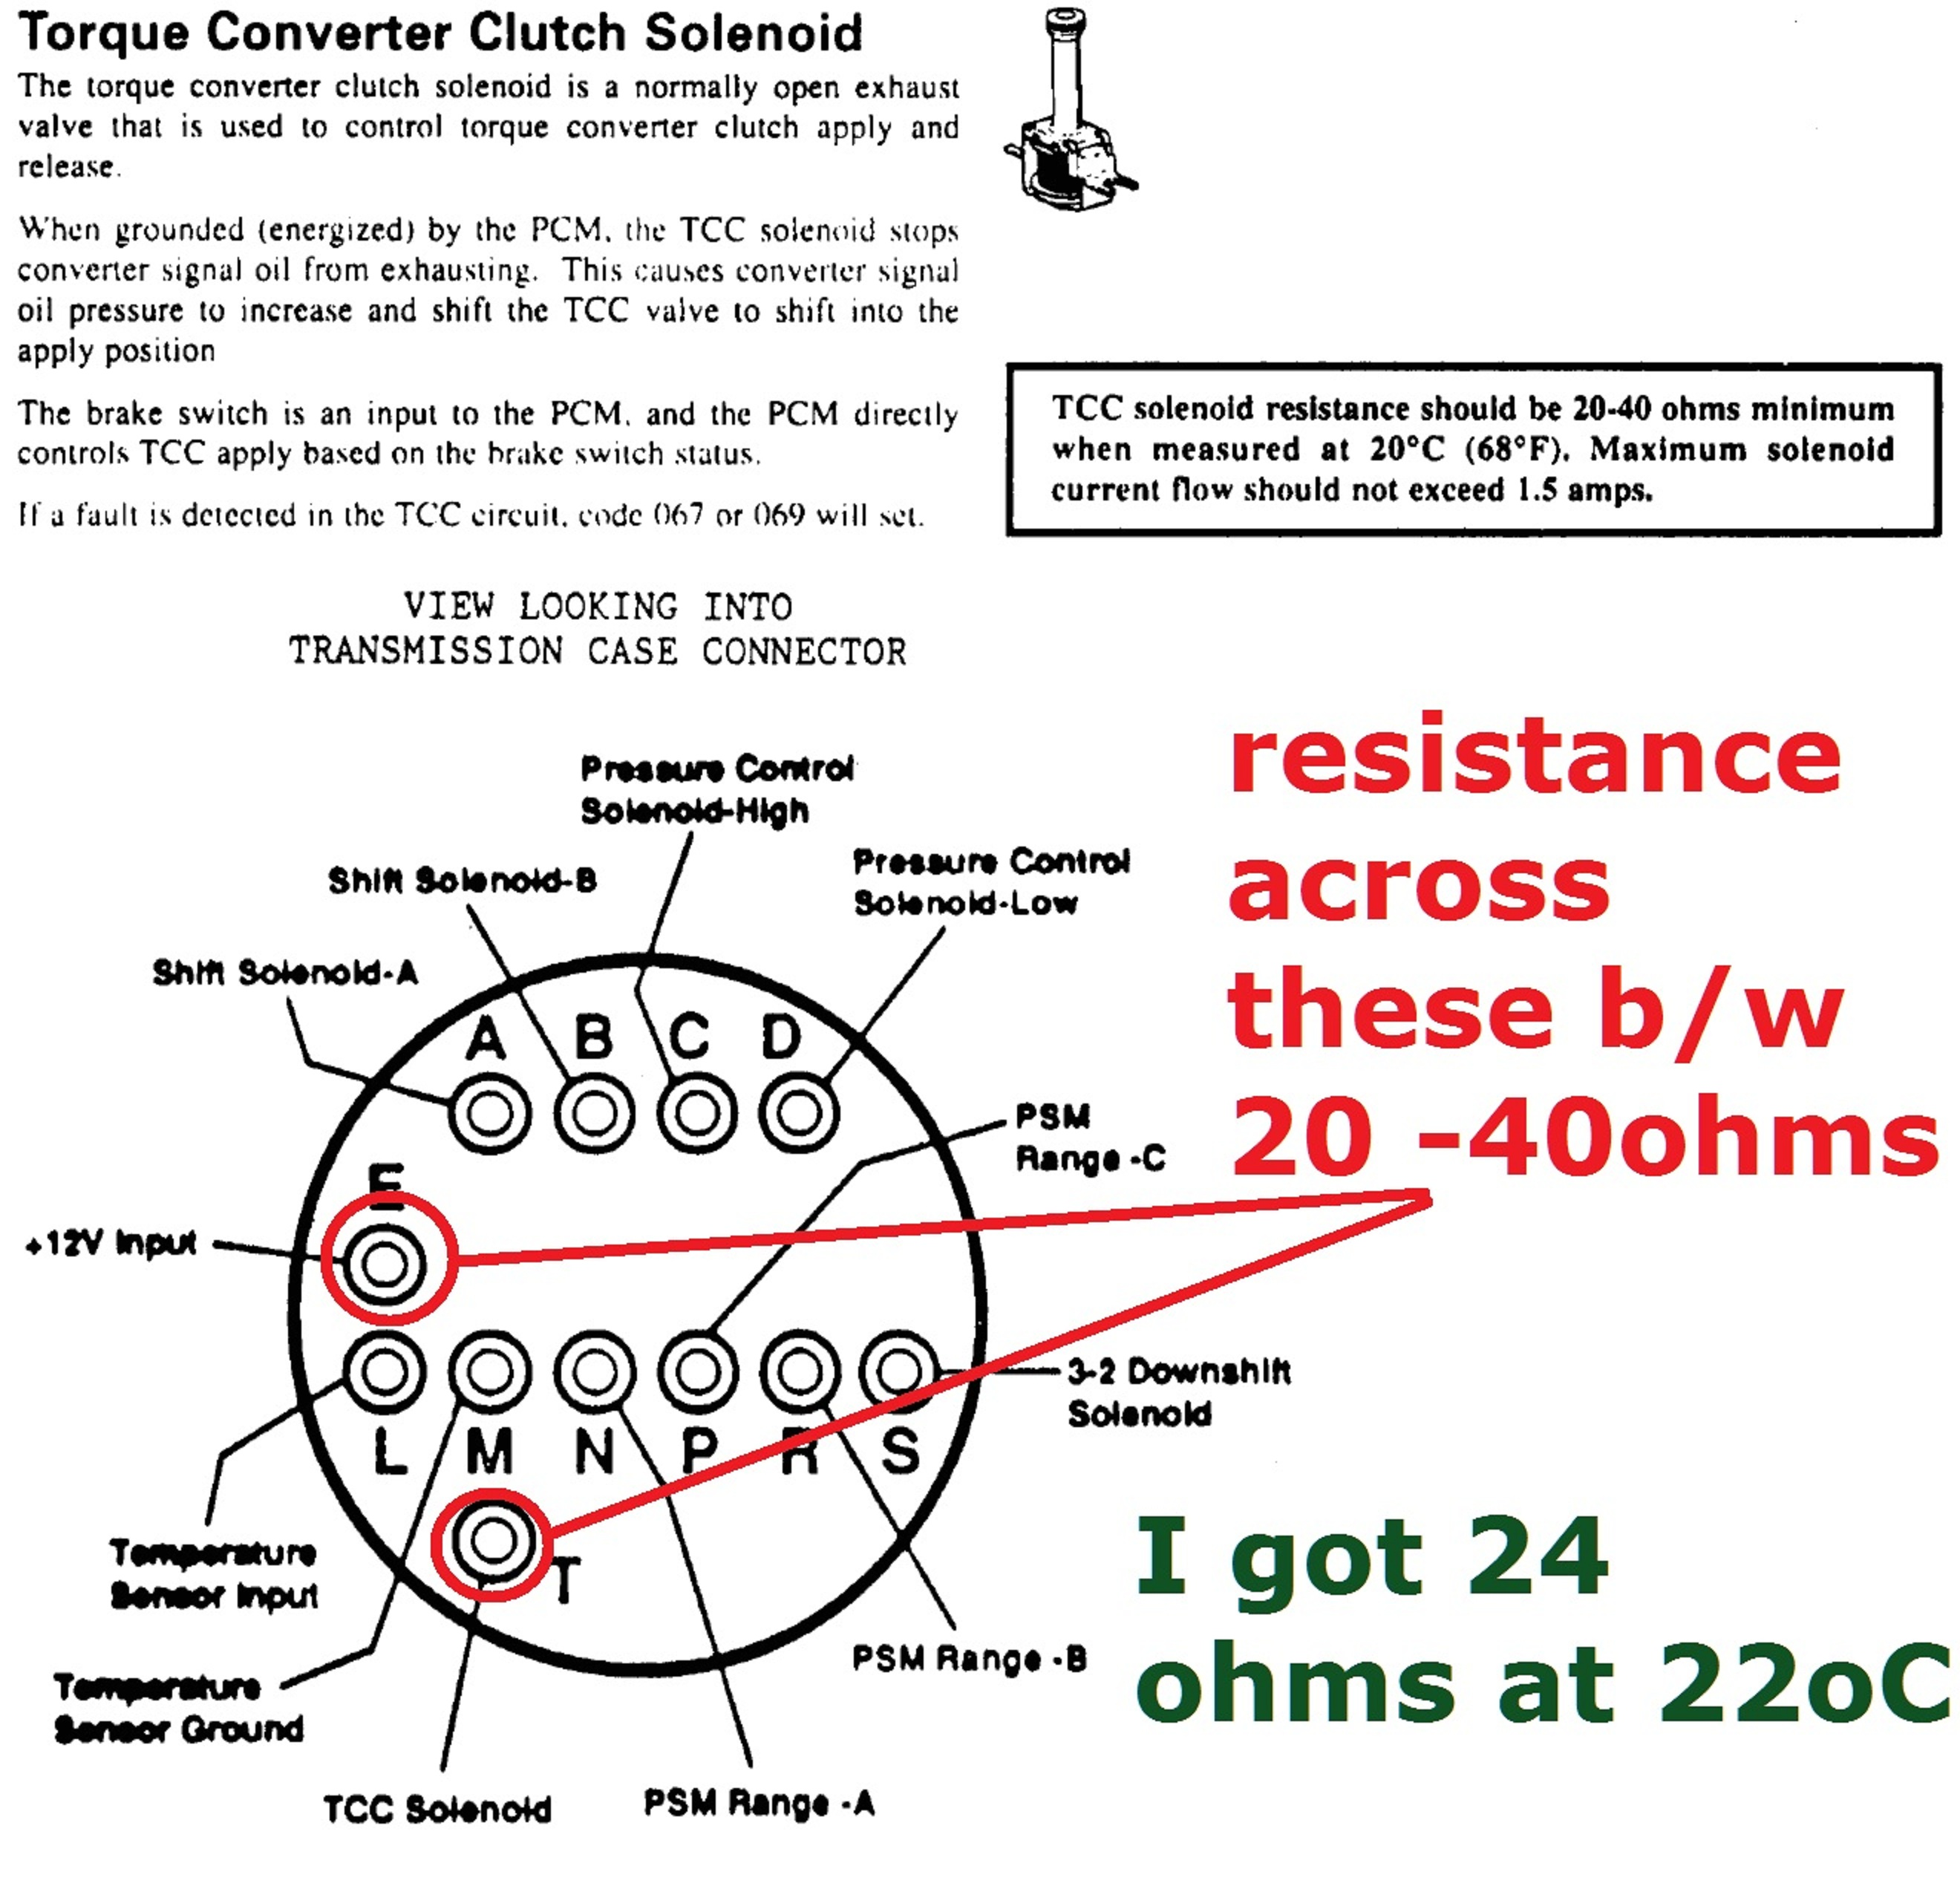 Click image for larger version  Name:Tcc solenoid texting.jpg Views:16921 Size:872.9 KB ID:52719